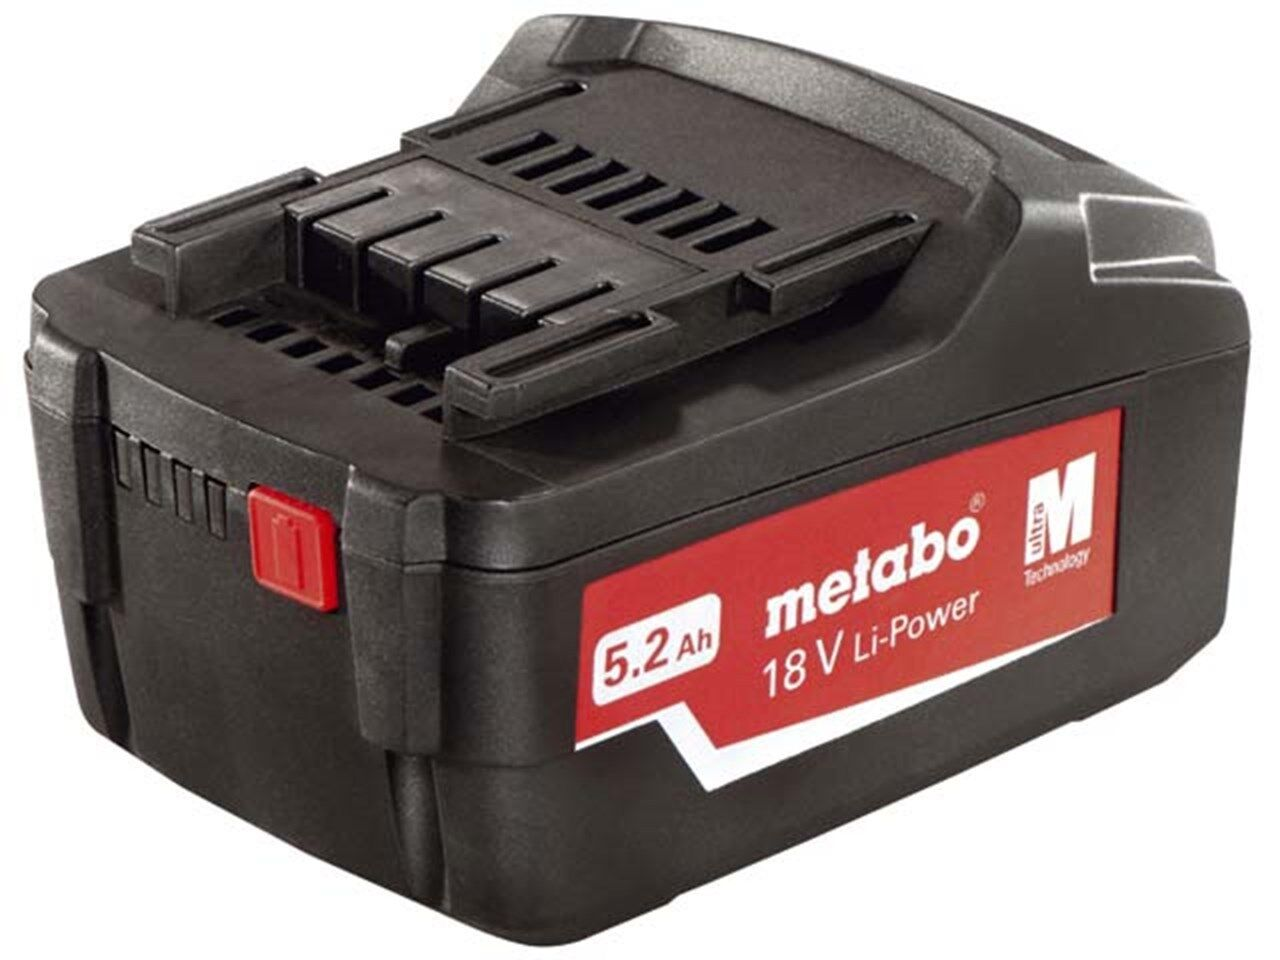 Metabo 625592000 18v 5.2ah Li-ion Power Extreme Battery for Cordless Power Tools